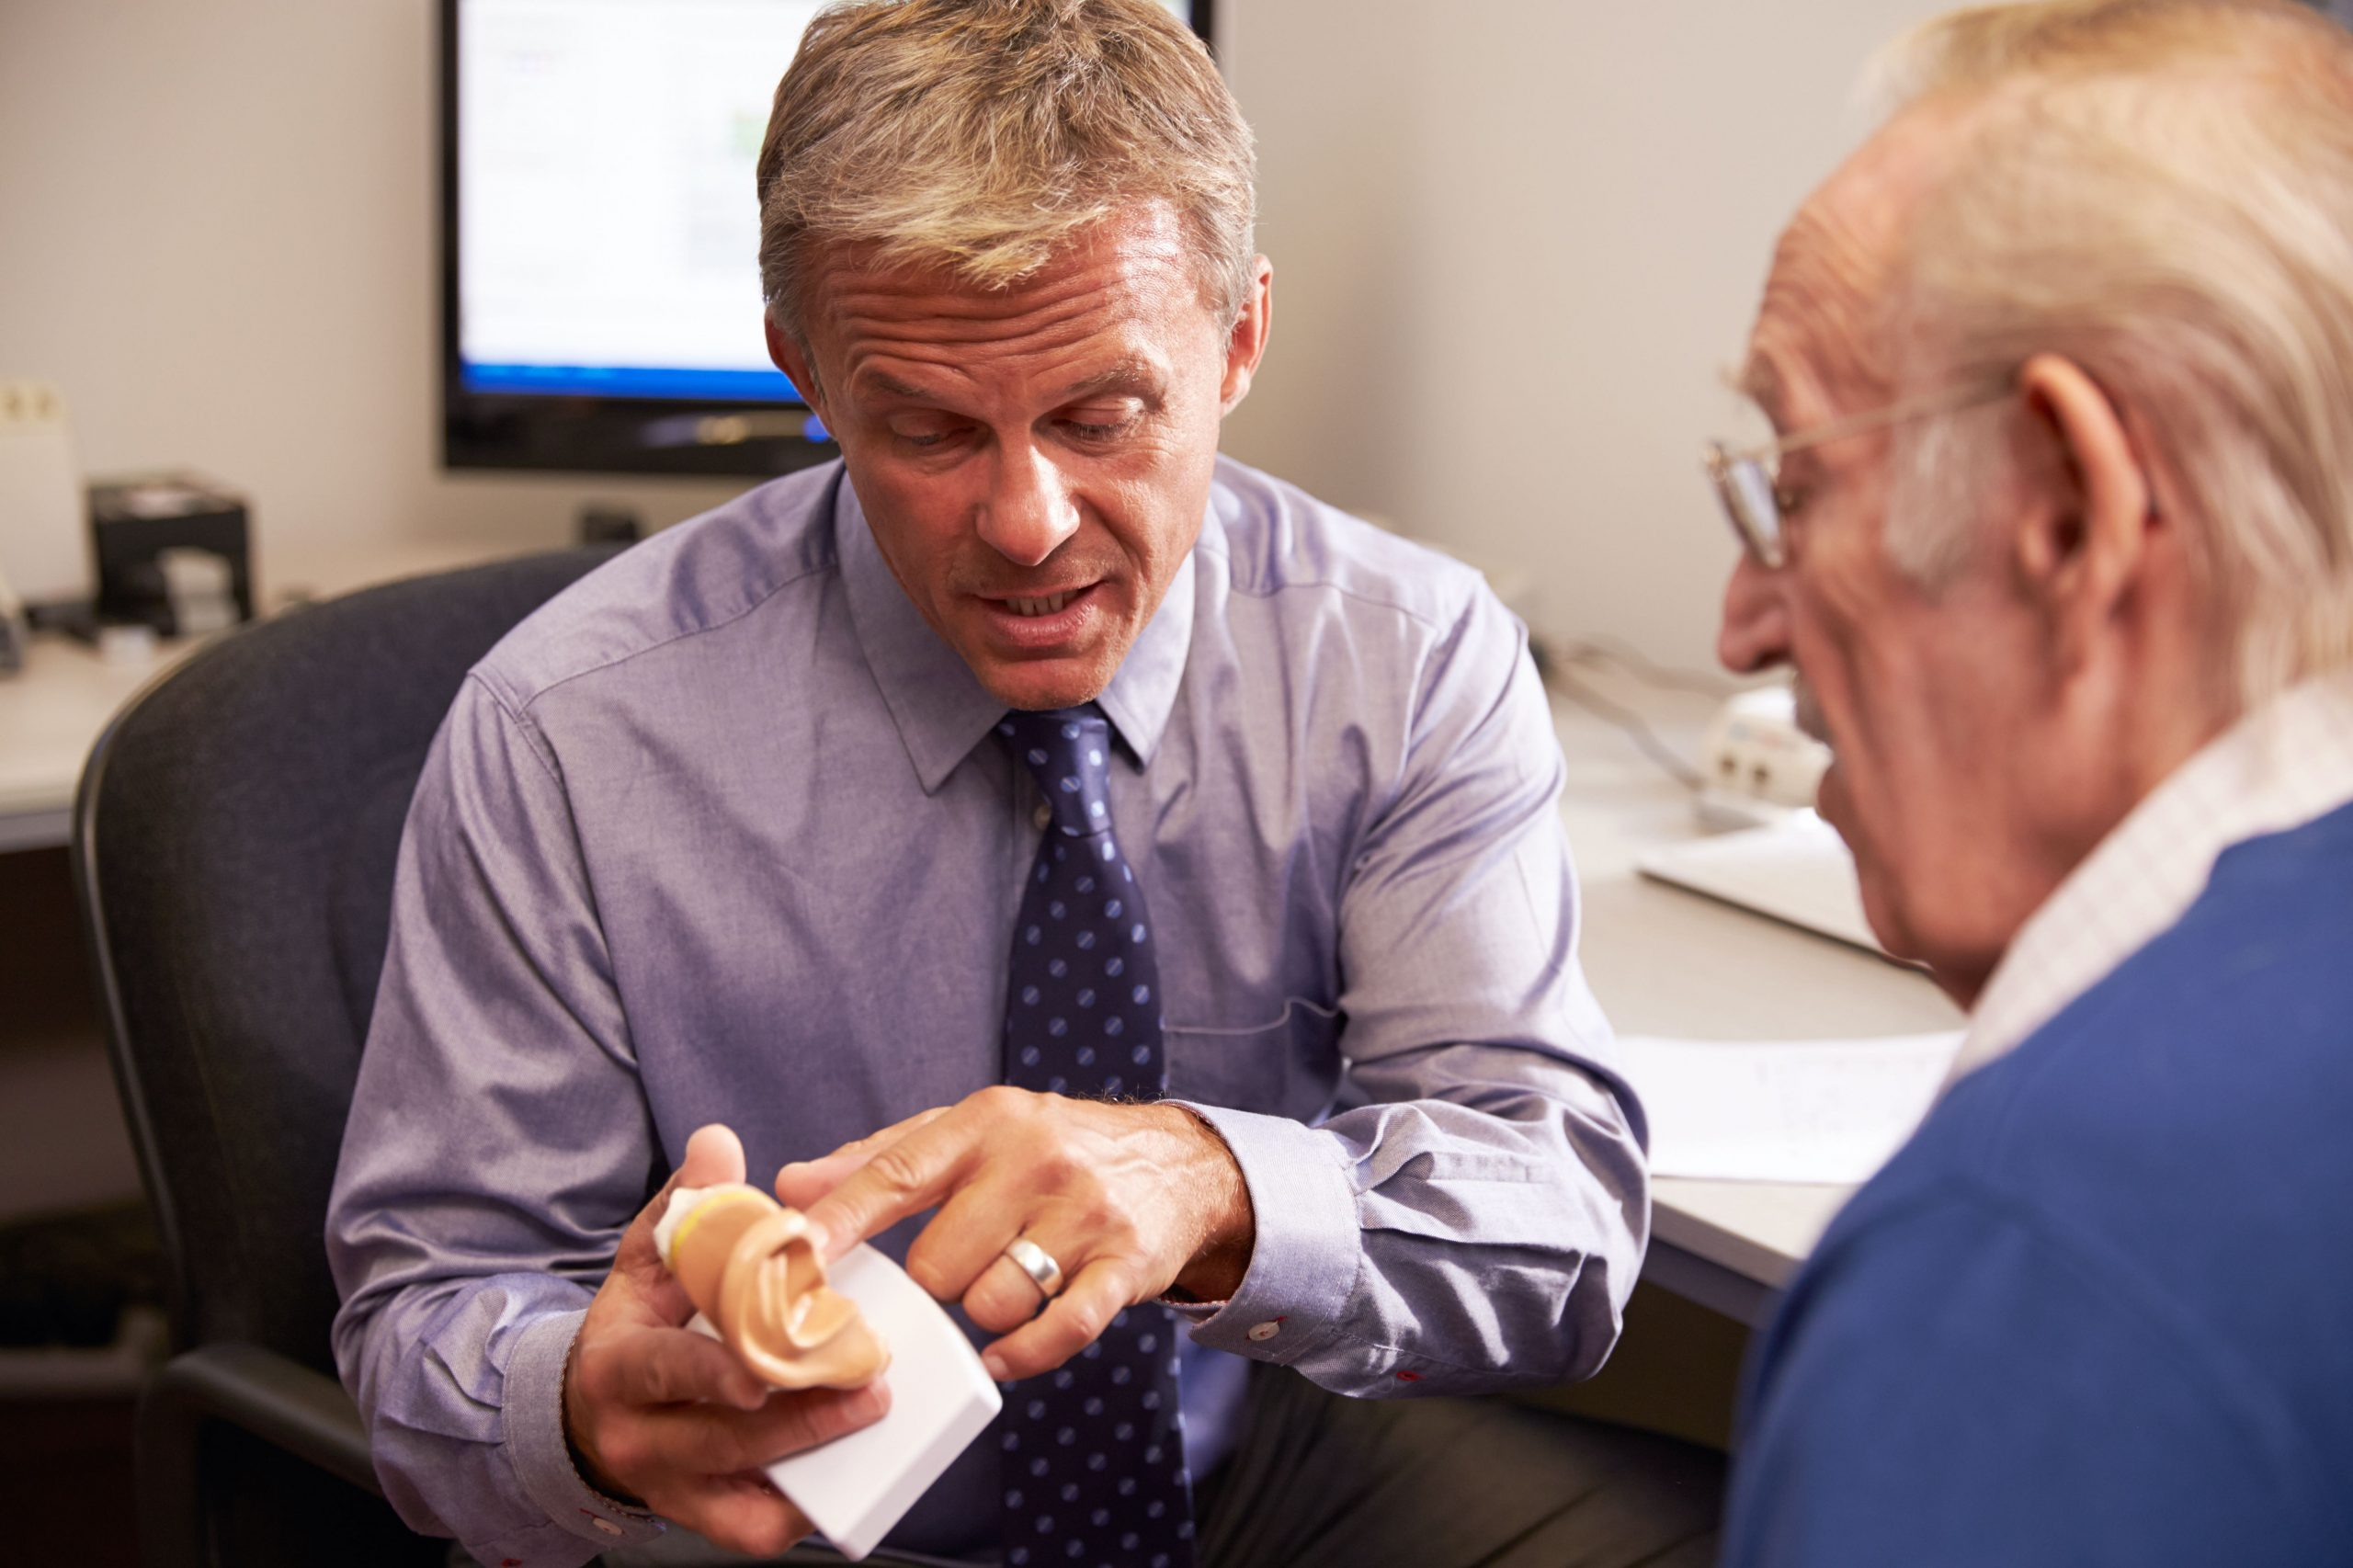 A hearing care practitioner working with a patient